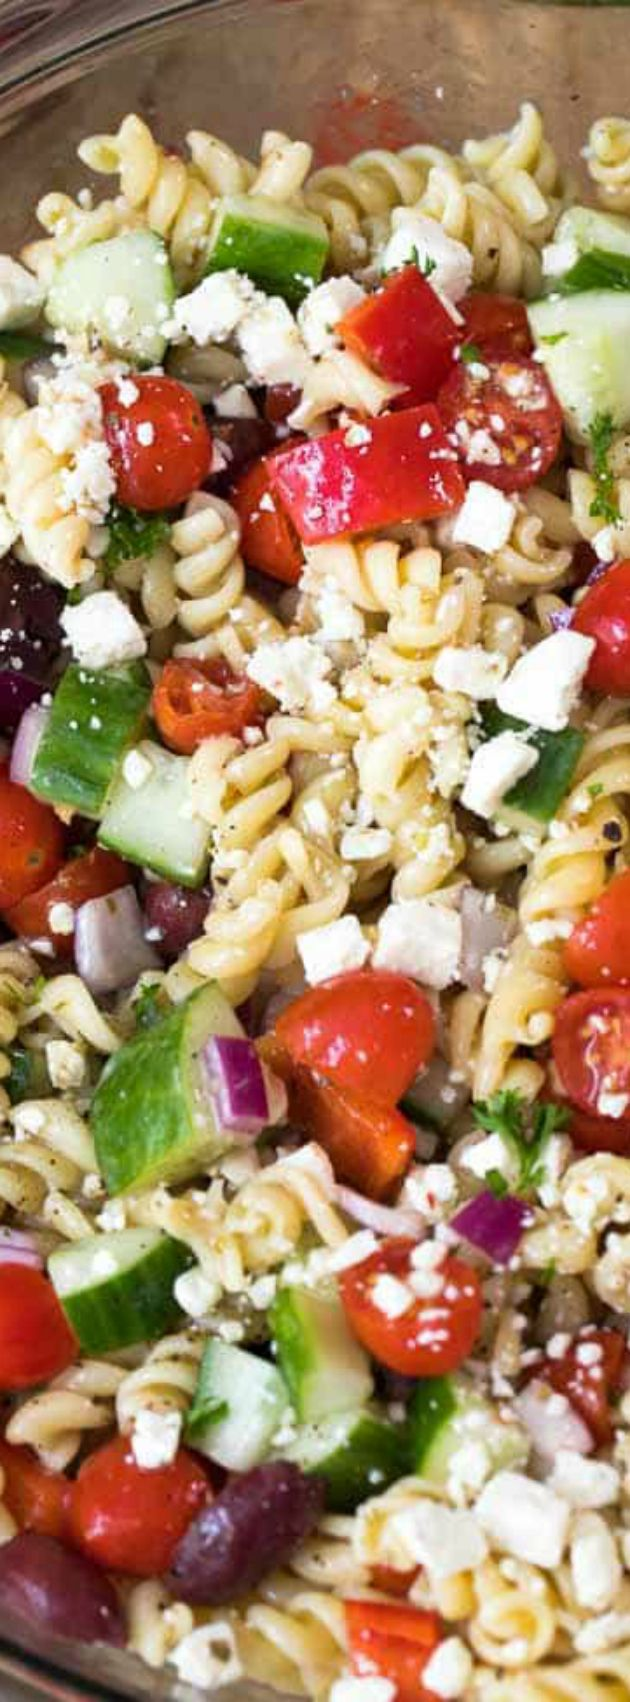 EASY GREEK PASTA SALAD From Spend with Pennies -- Part of our THE BEST PICNIC AND POTLUCK RECIPES